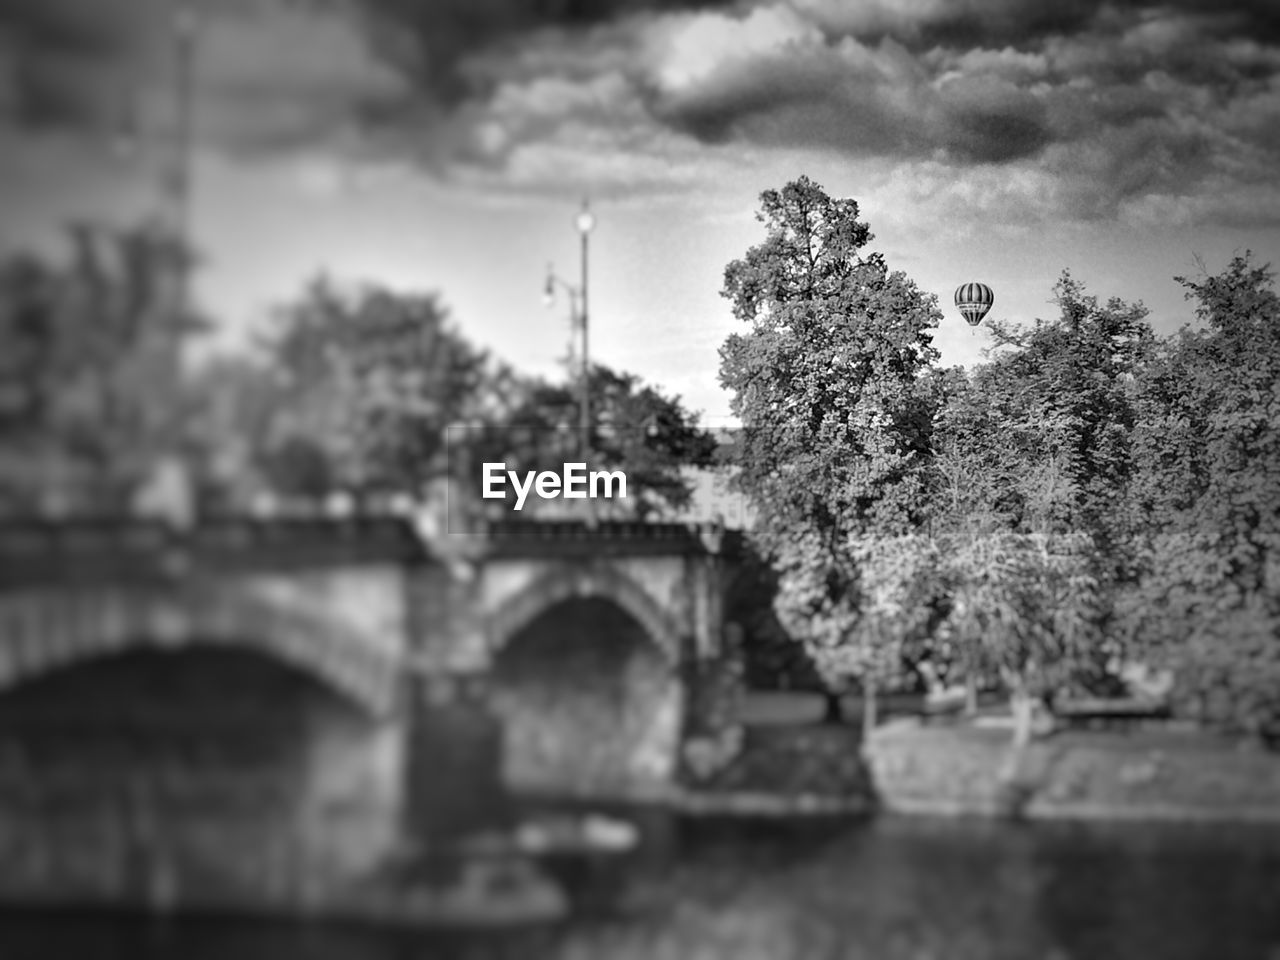 tree, plant, architecture, built structure, sky, arch, bridge, connection, nature, cloud - sky, bridge - man made structure, history, no people, day, the past, building exterior, outdoors, water, growth, building, arch bridge